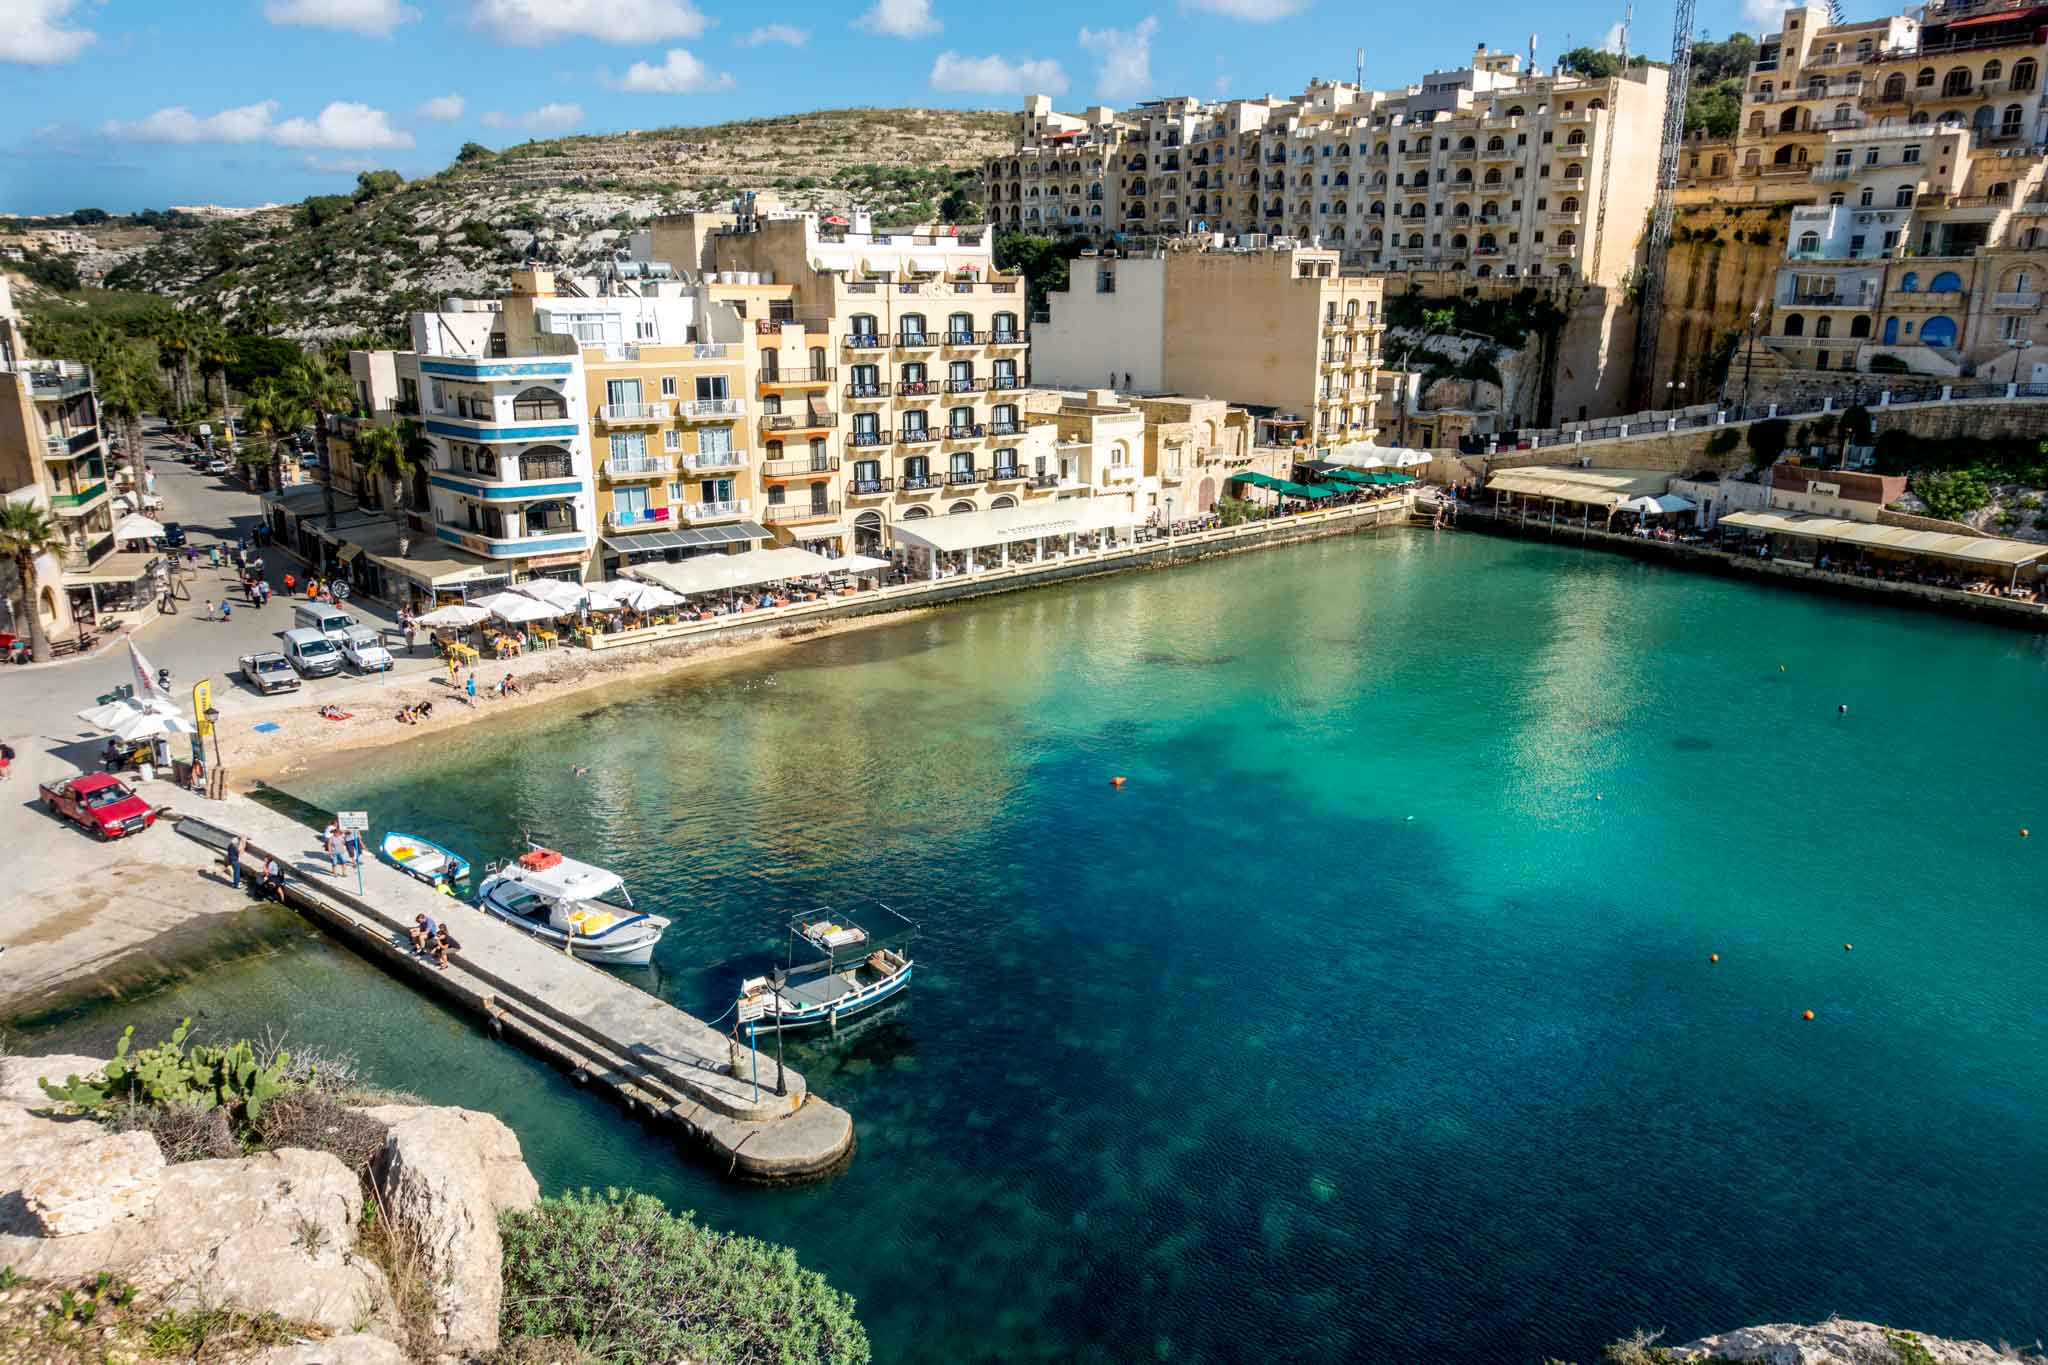 Bay surrounded by buildings in Xlendi, Malta